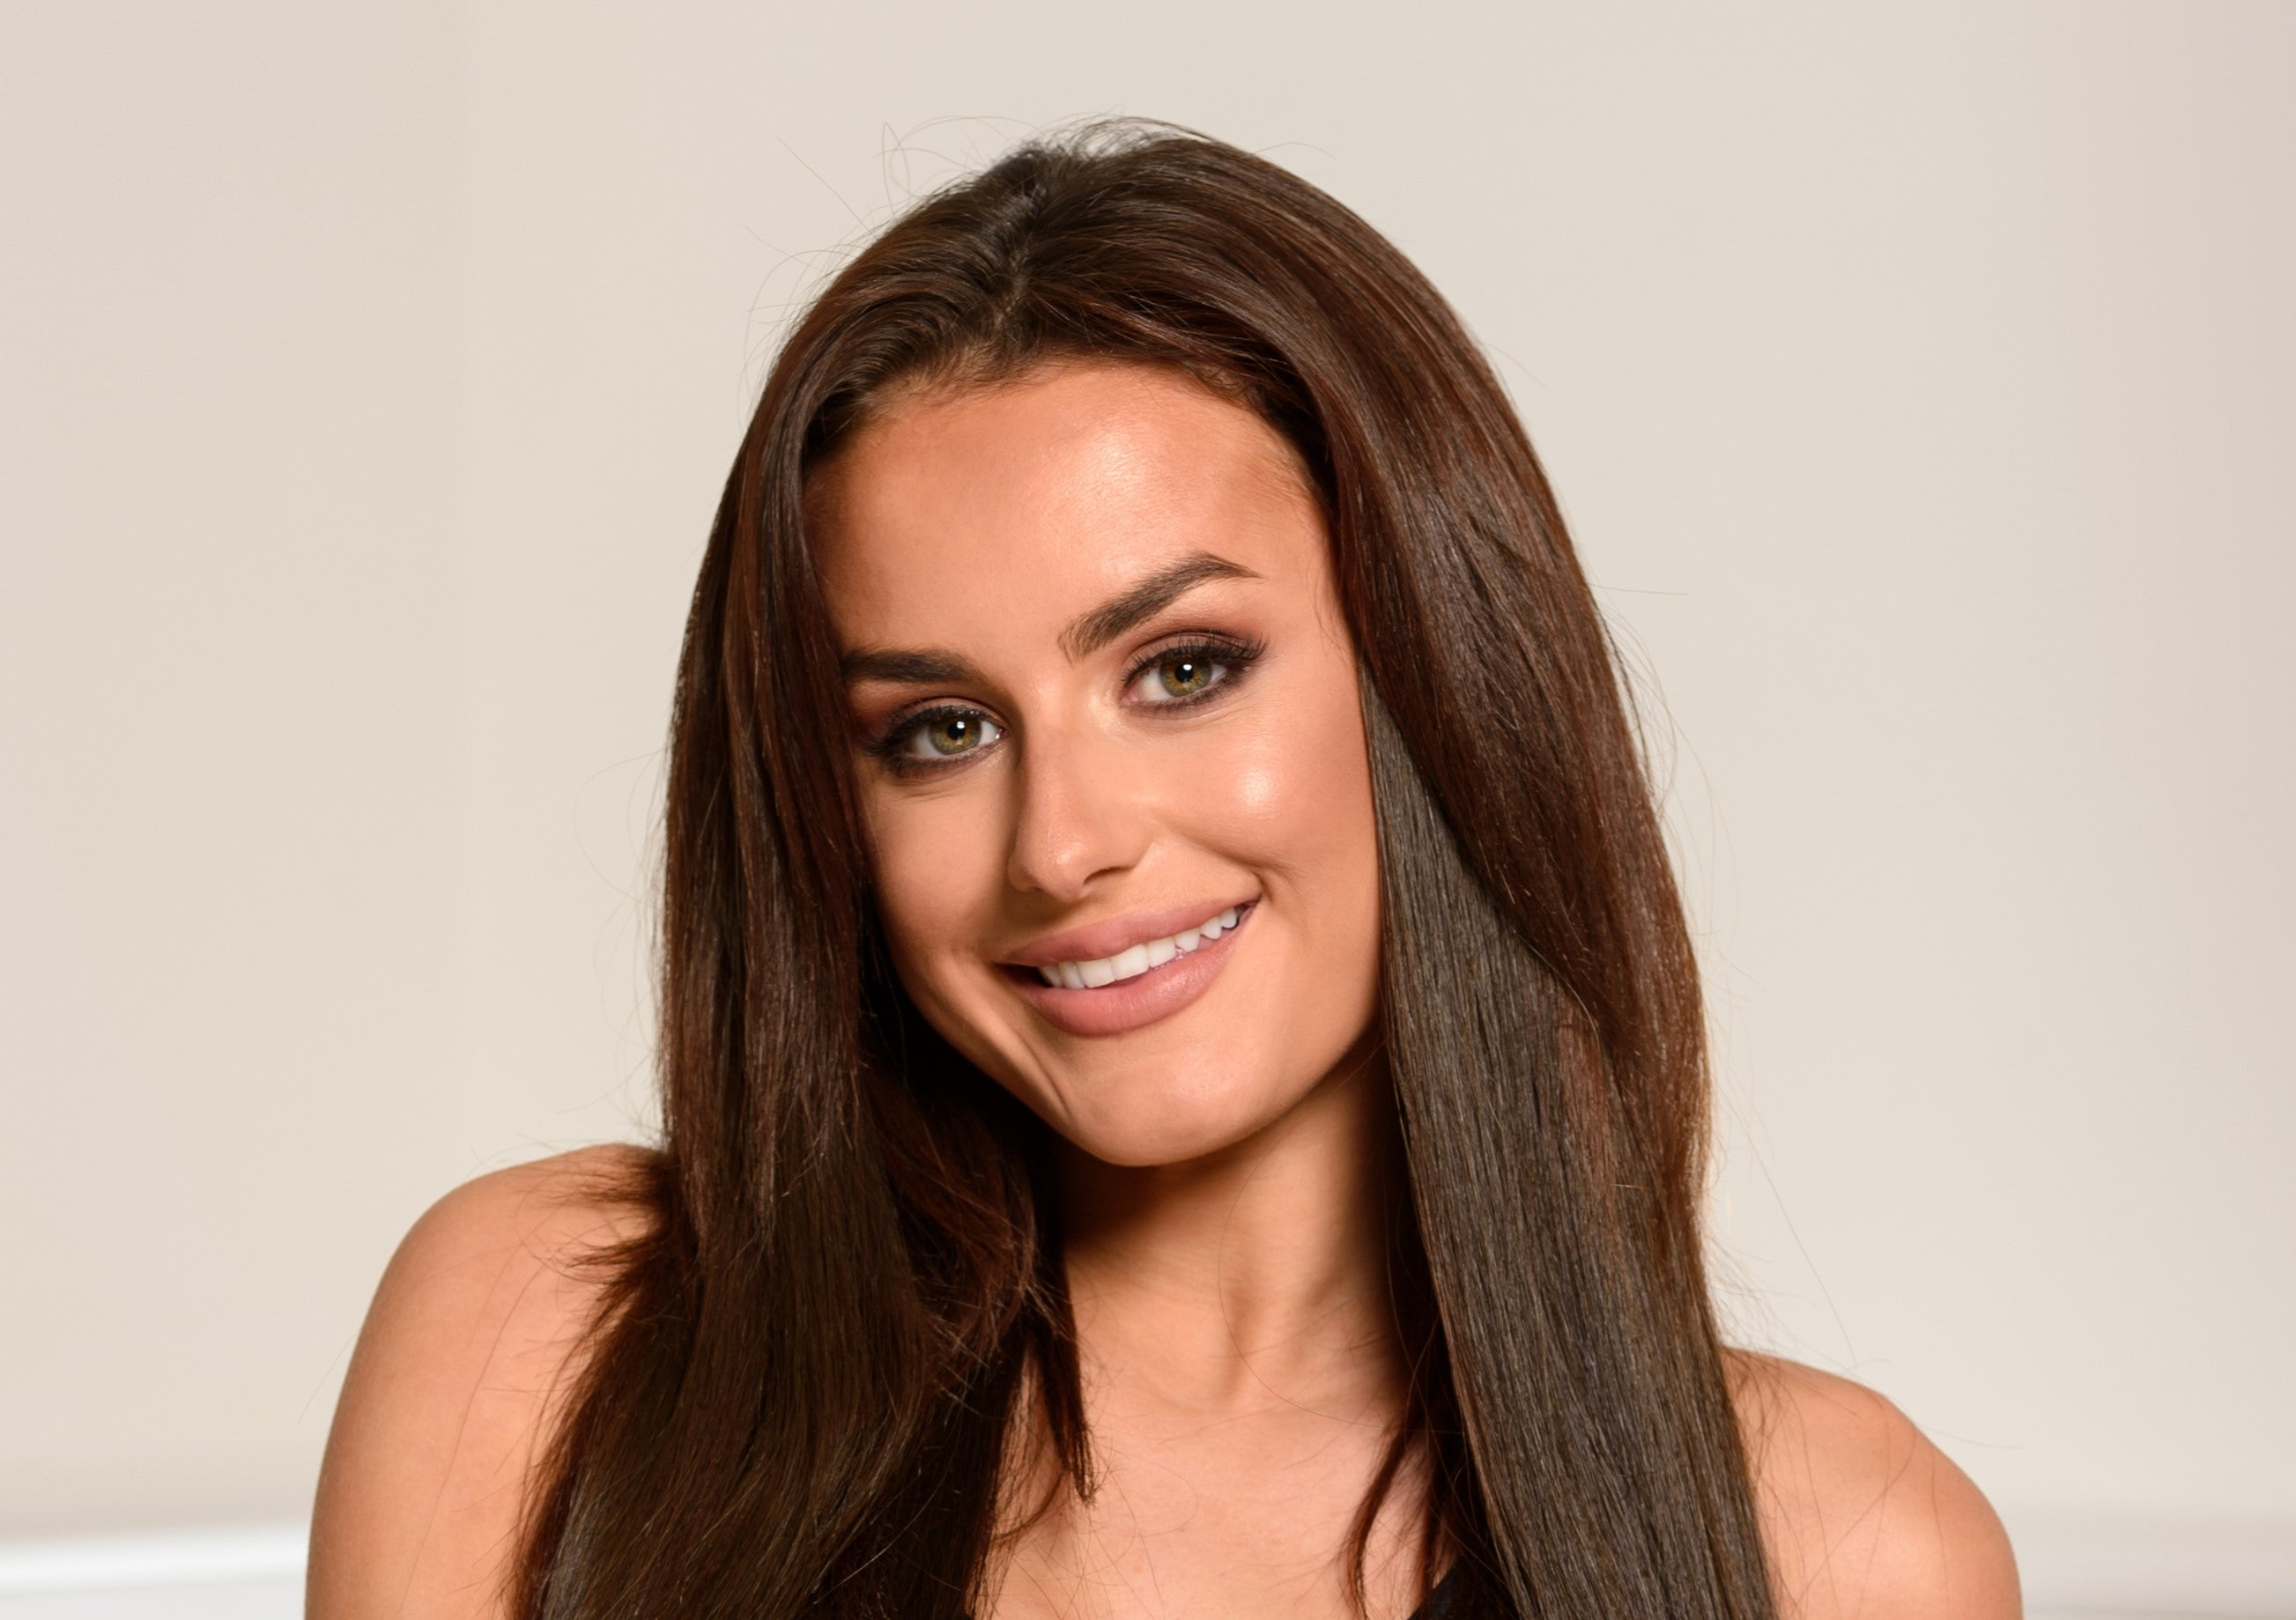 Pictures Amber Davies naked (53 foto and video), Tits, Sideboobs, Feet, braless 2017